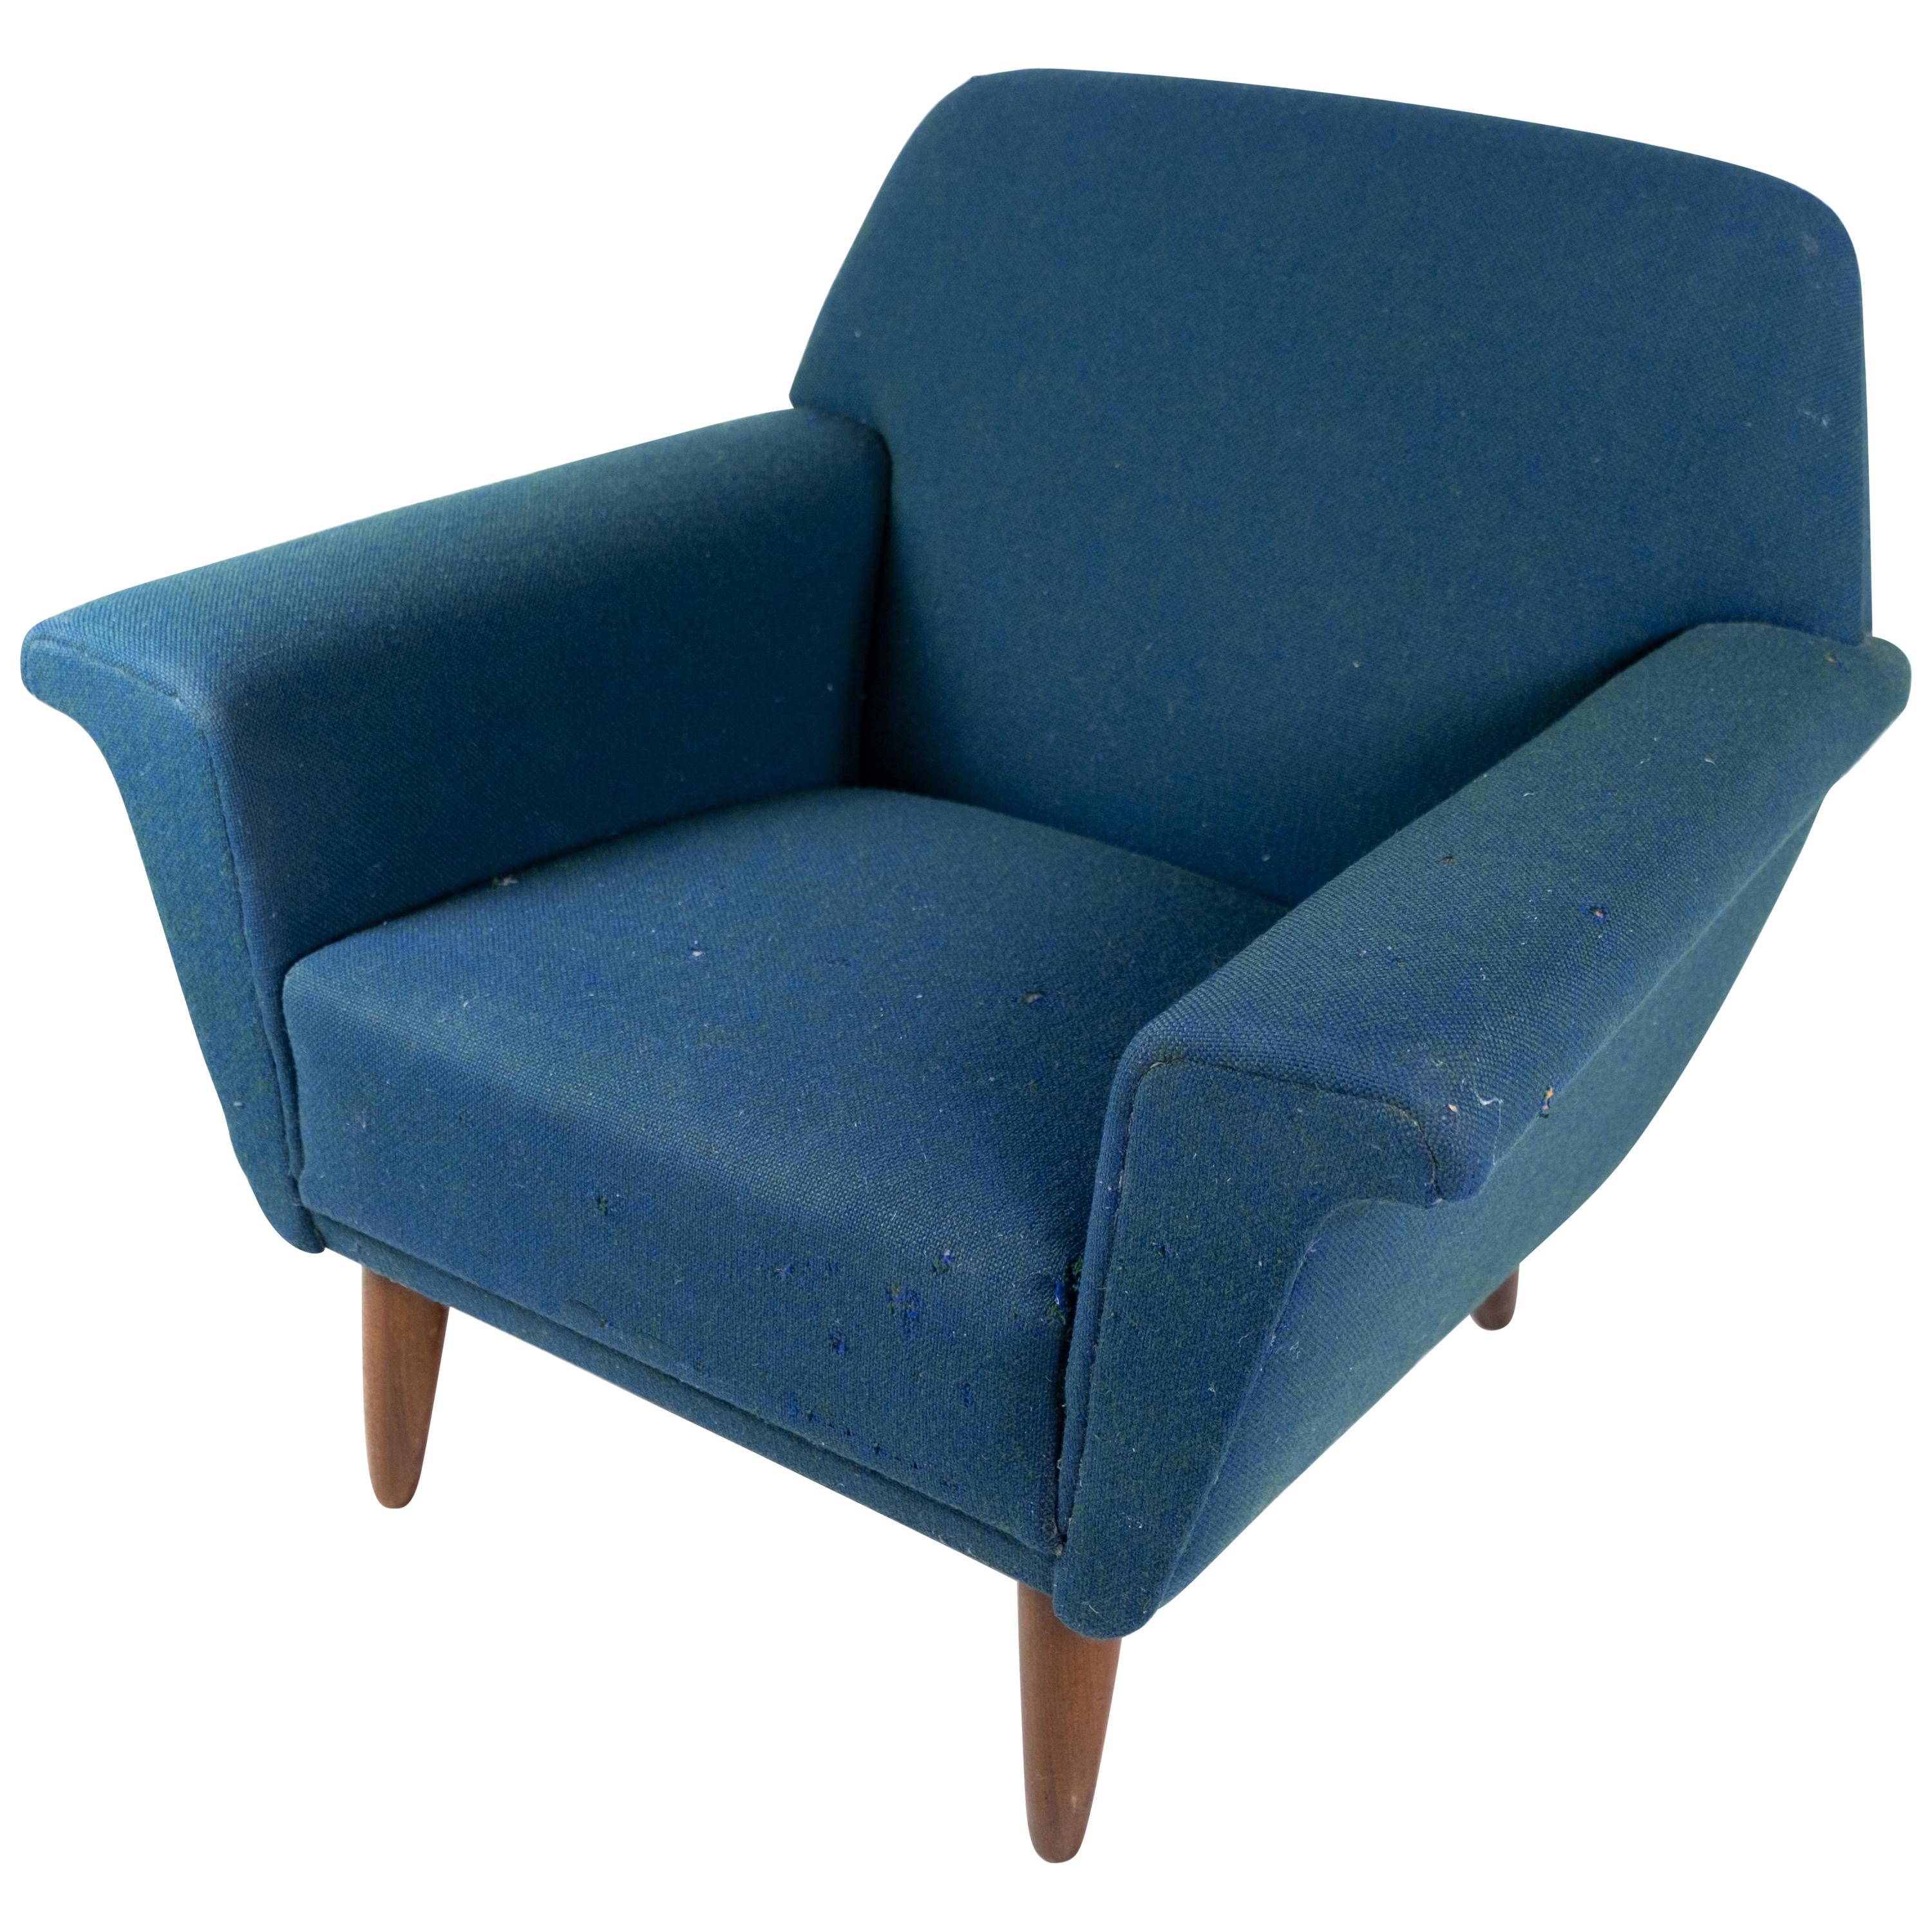 Armchair Upholstered with Dark Blue Wool Fabric and Legs in Dark Wood, 1960s